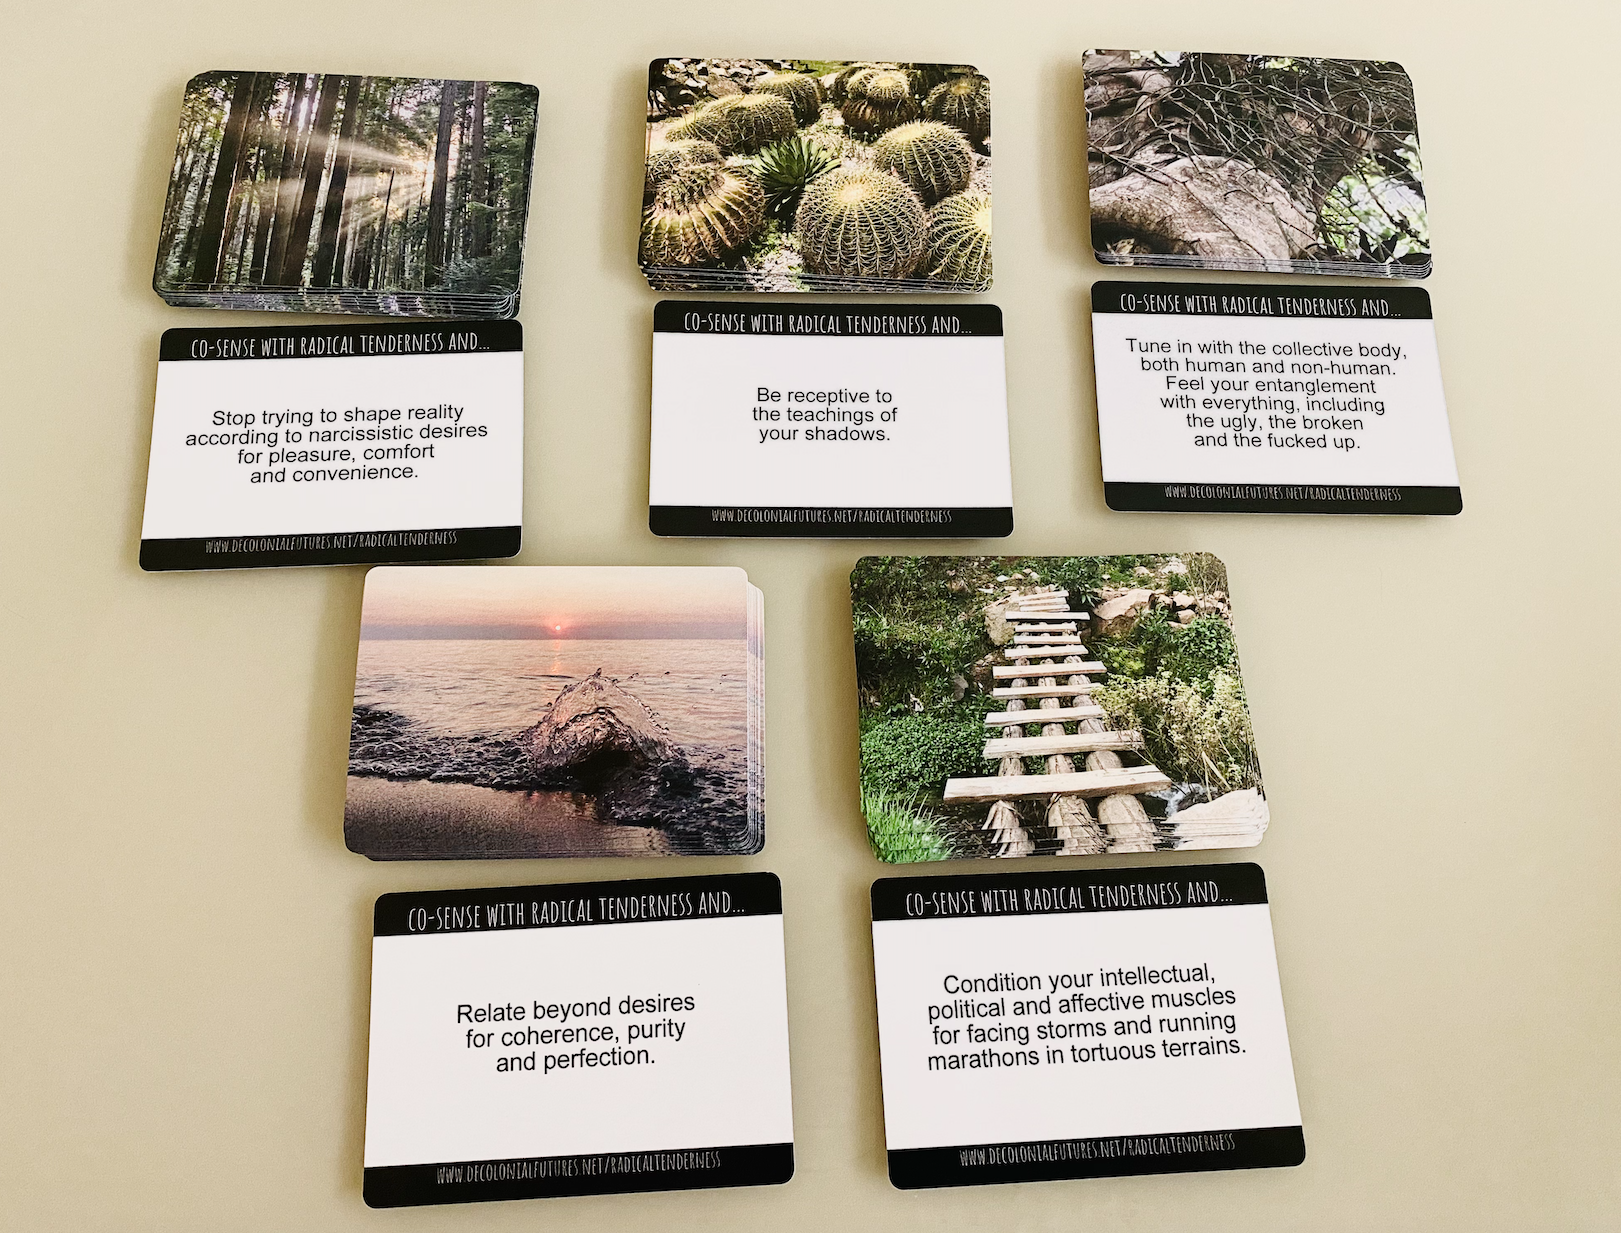 Radical tenderness cards arranged into 10 piles, showing both the front and back of the cards.